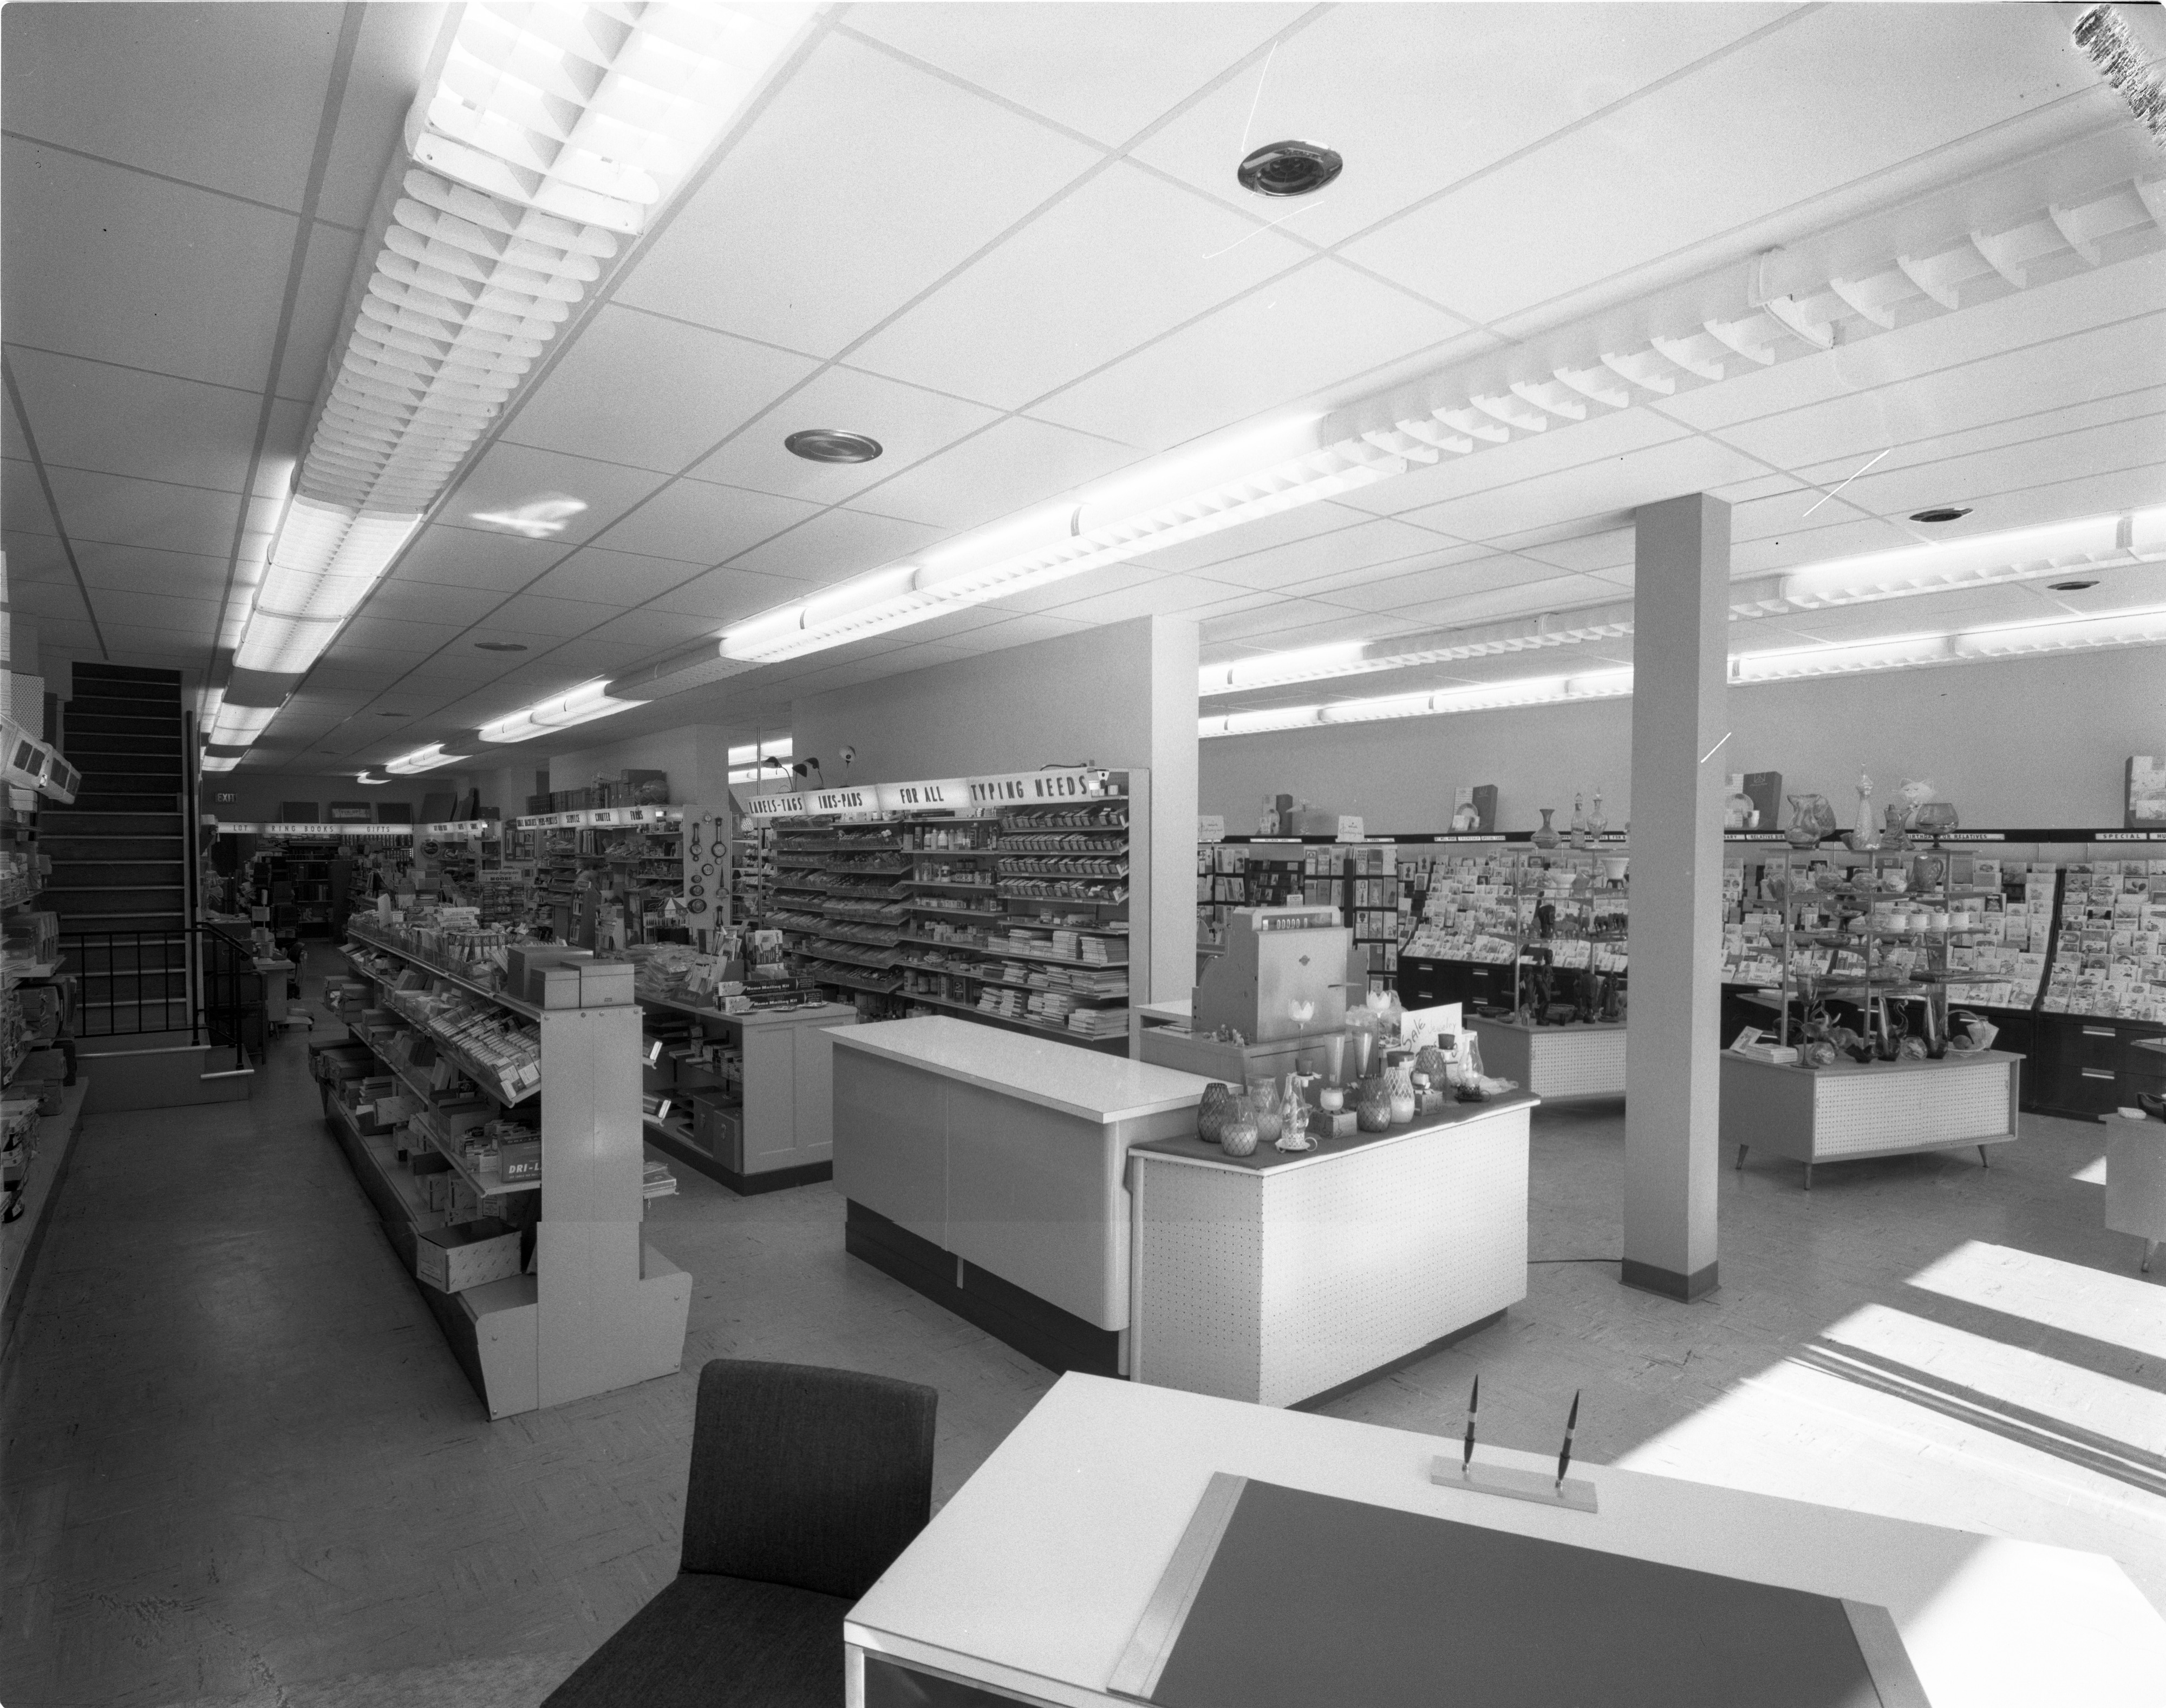 Newly Remodeled Interior Of Mayer-Schairer, August 18, 1962 image